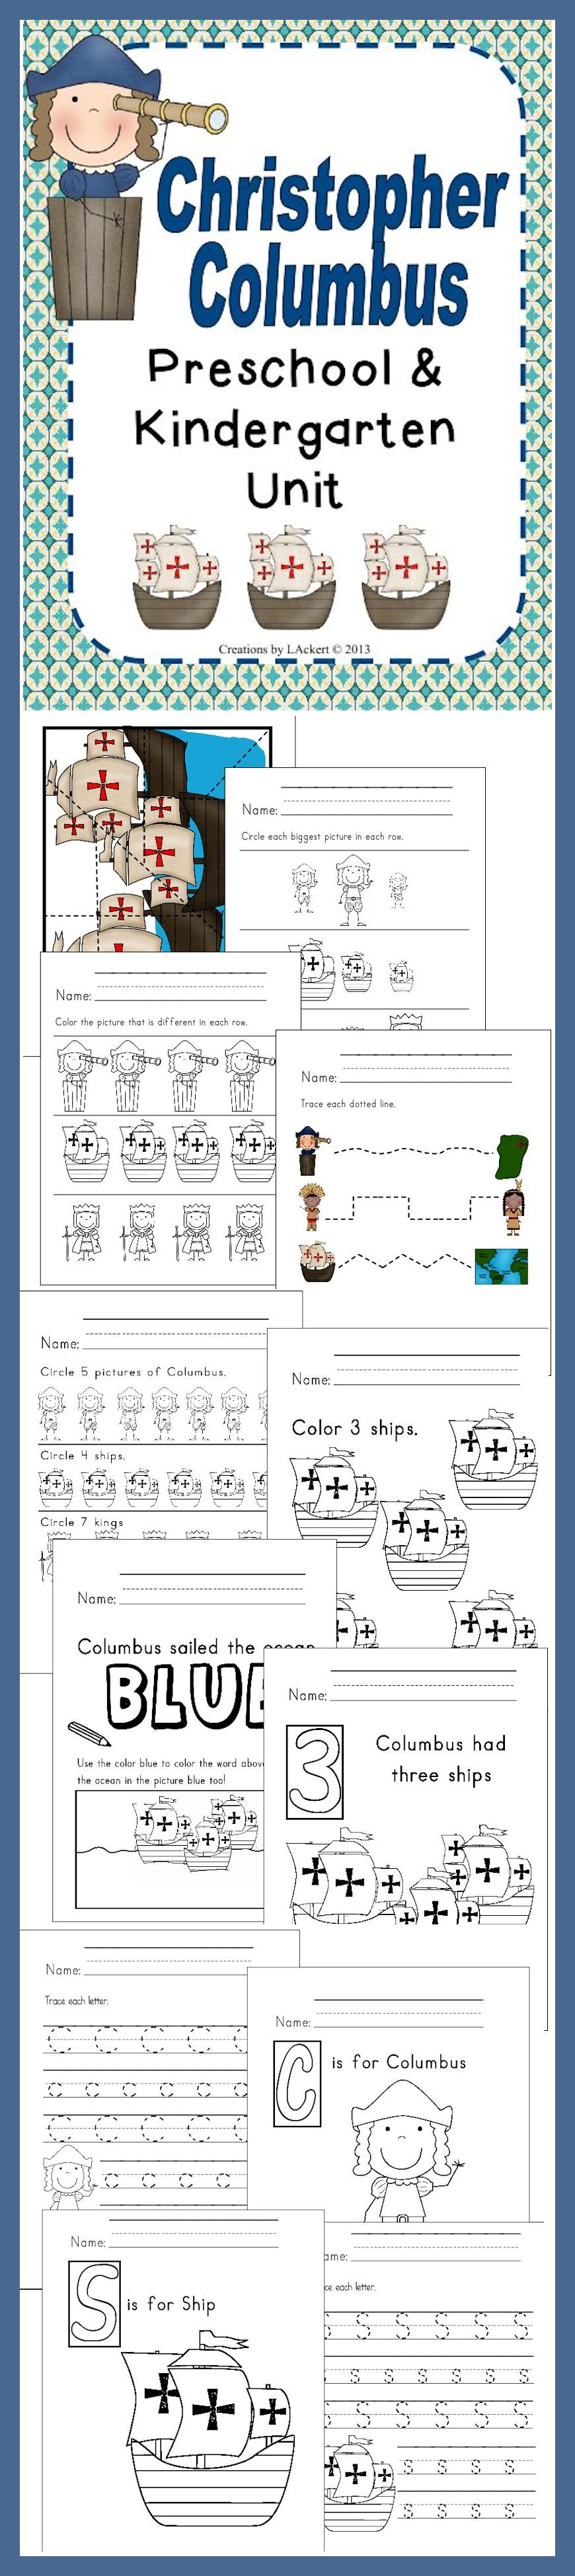 Worksheets Christopher Columbus Worksheets christopher columbus kindergarten unit that includes different worksheets and activities